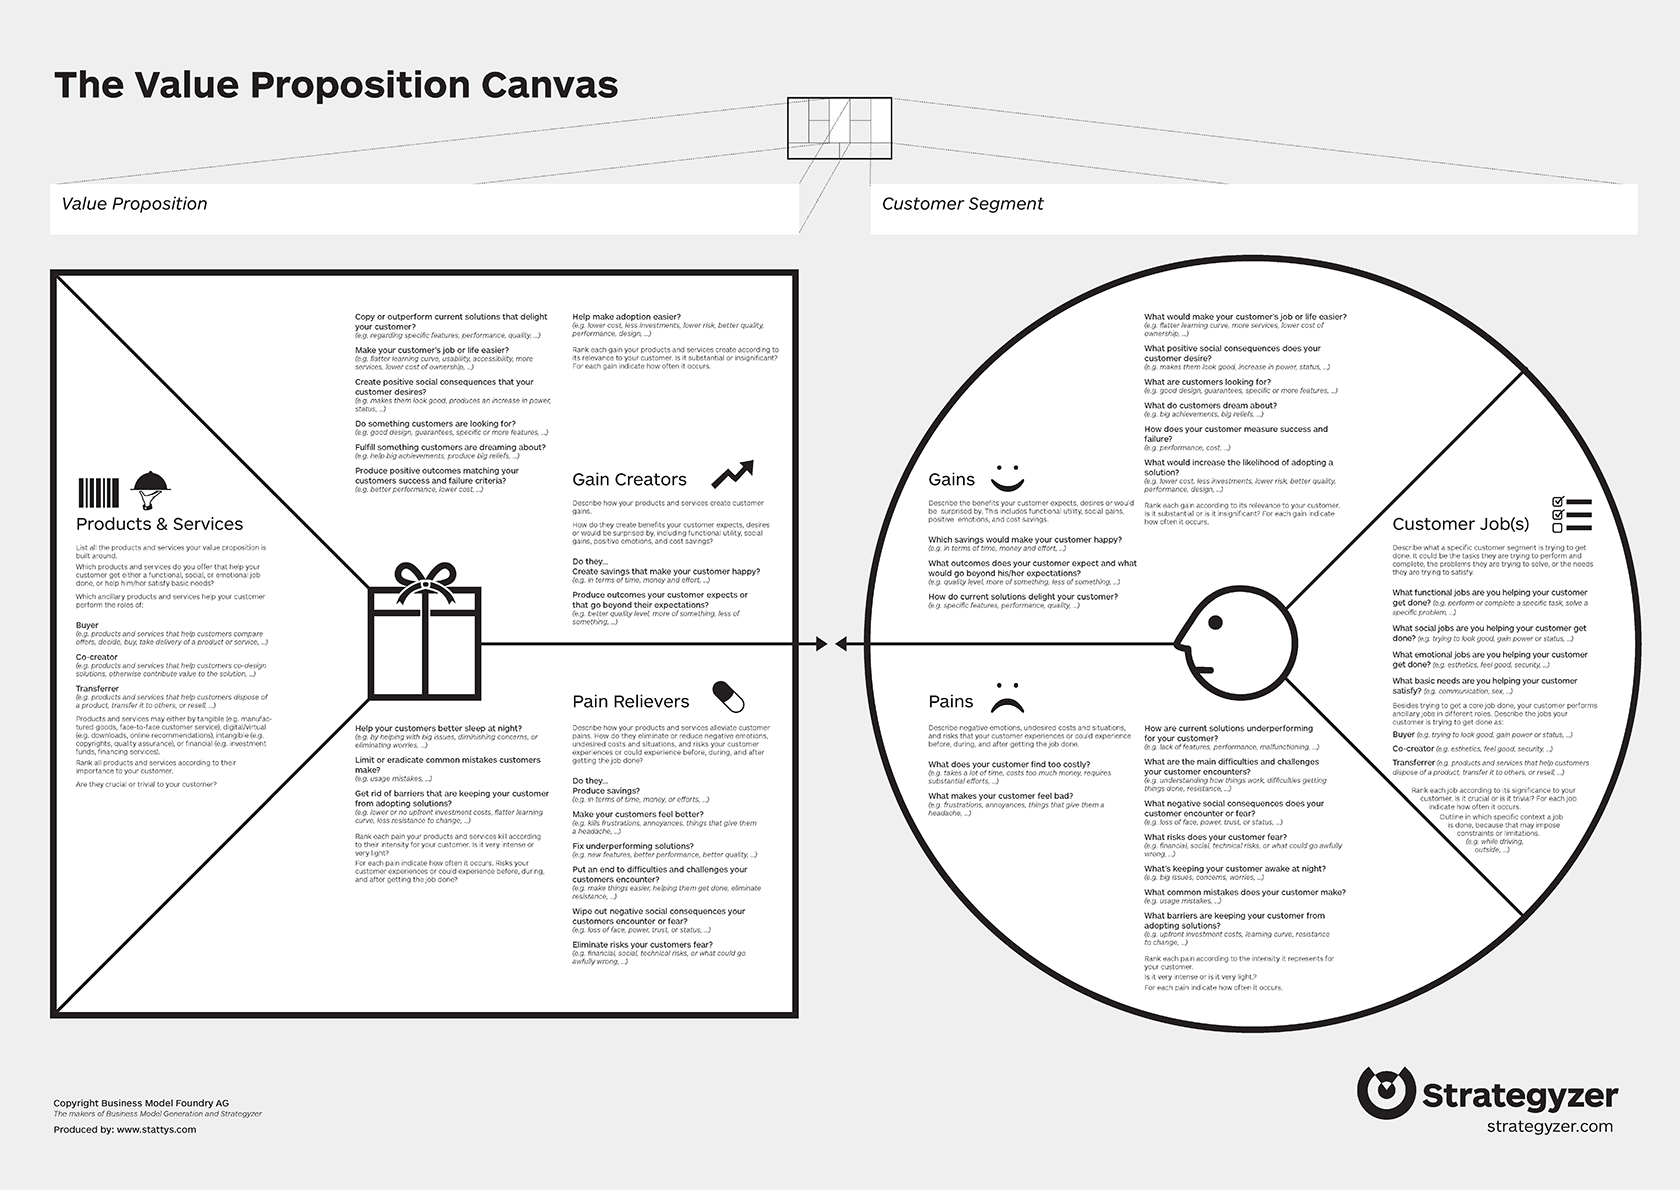 5 Reasons Nonprofits Must Use the Value Proposition Canvas